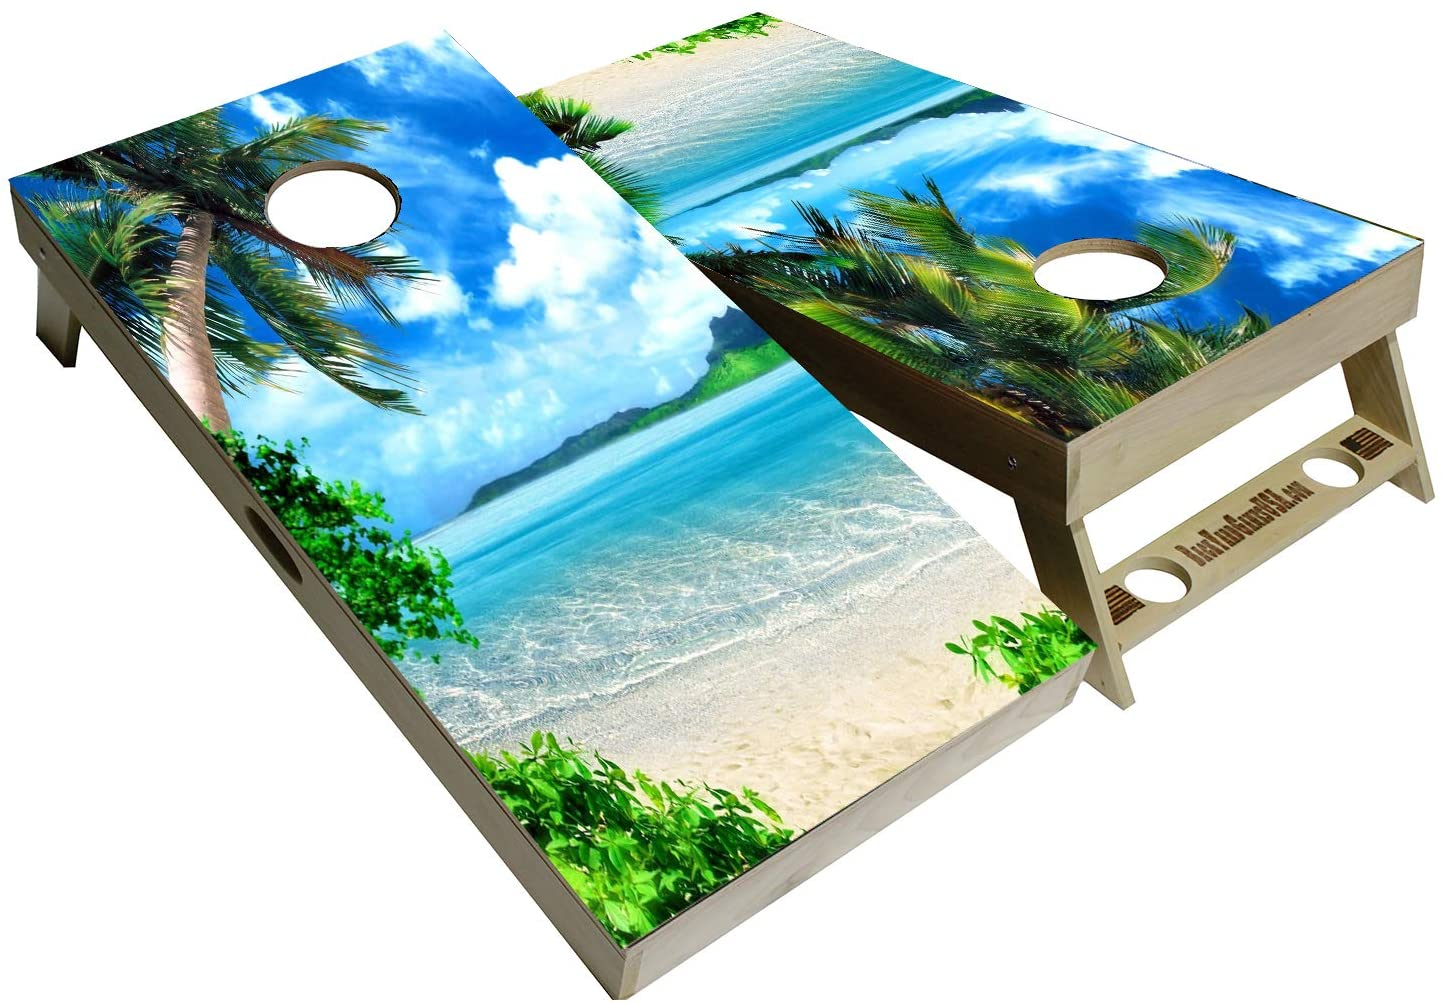 BackYardGames Vinyl Wraps Cornhole Board Decals Tropical Bag Toss Game Stickers (2X Wraps Skins only) Choose Between a varation of Tropical Decals